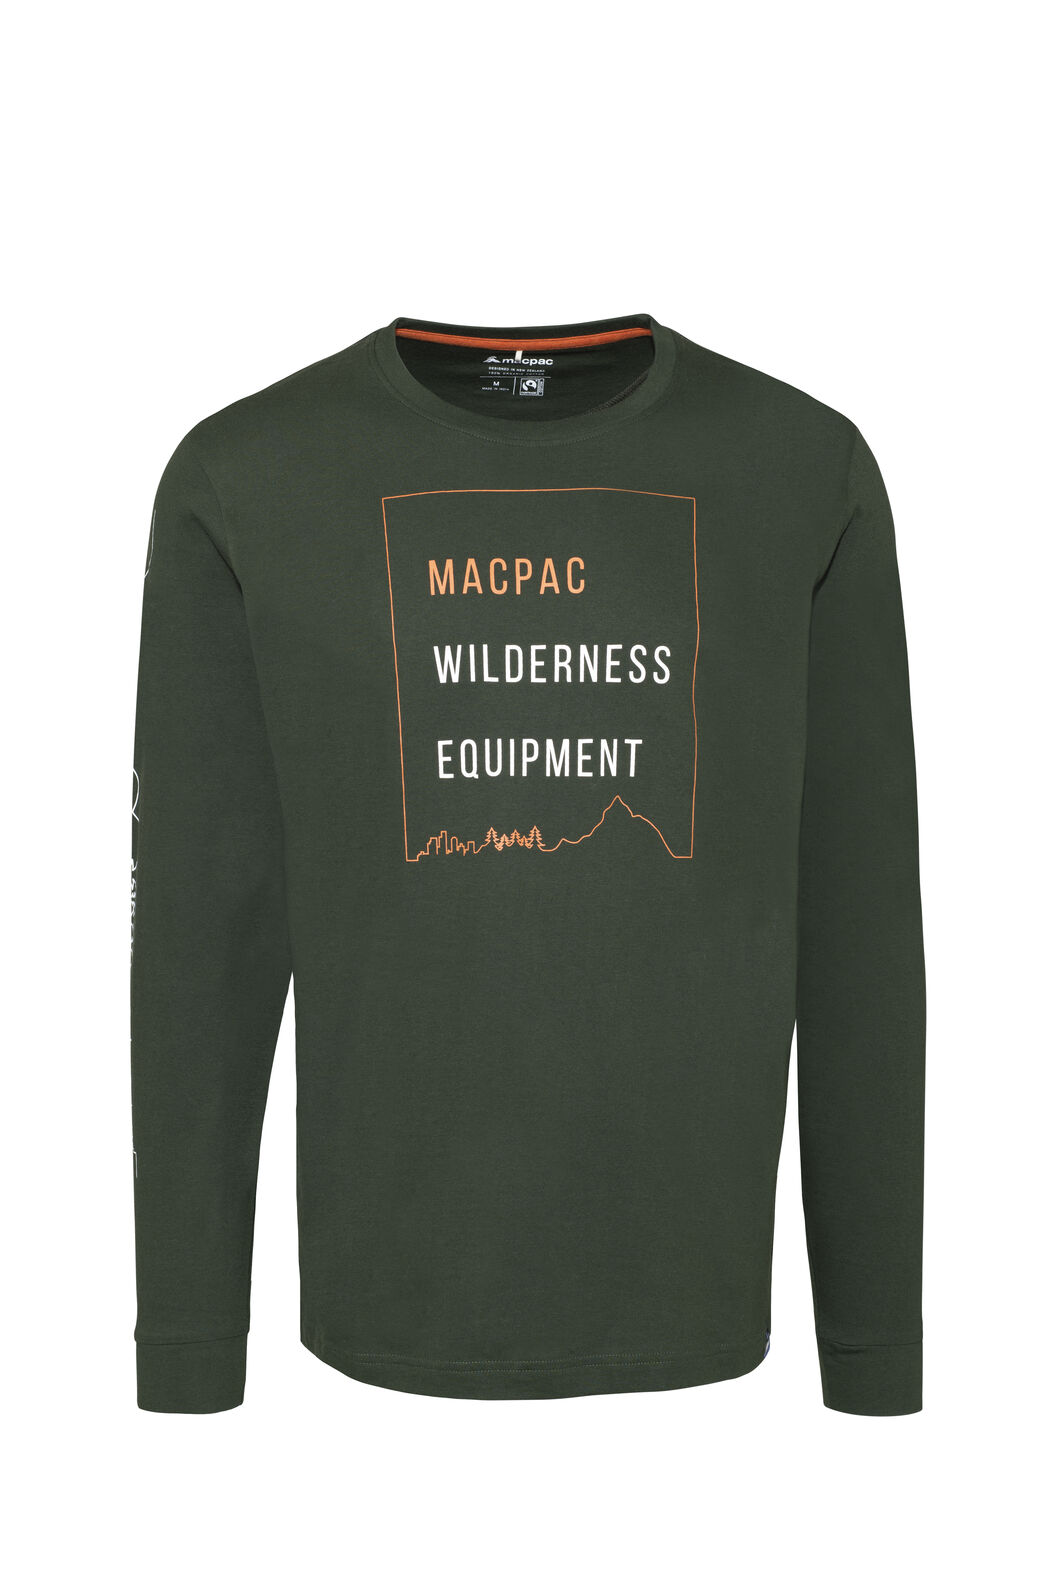 Macpac Wilderness Equipment Fairtrade Organic Cotton Long Sleeve Tee — Men's, Kombu Green, hi-res